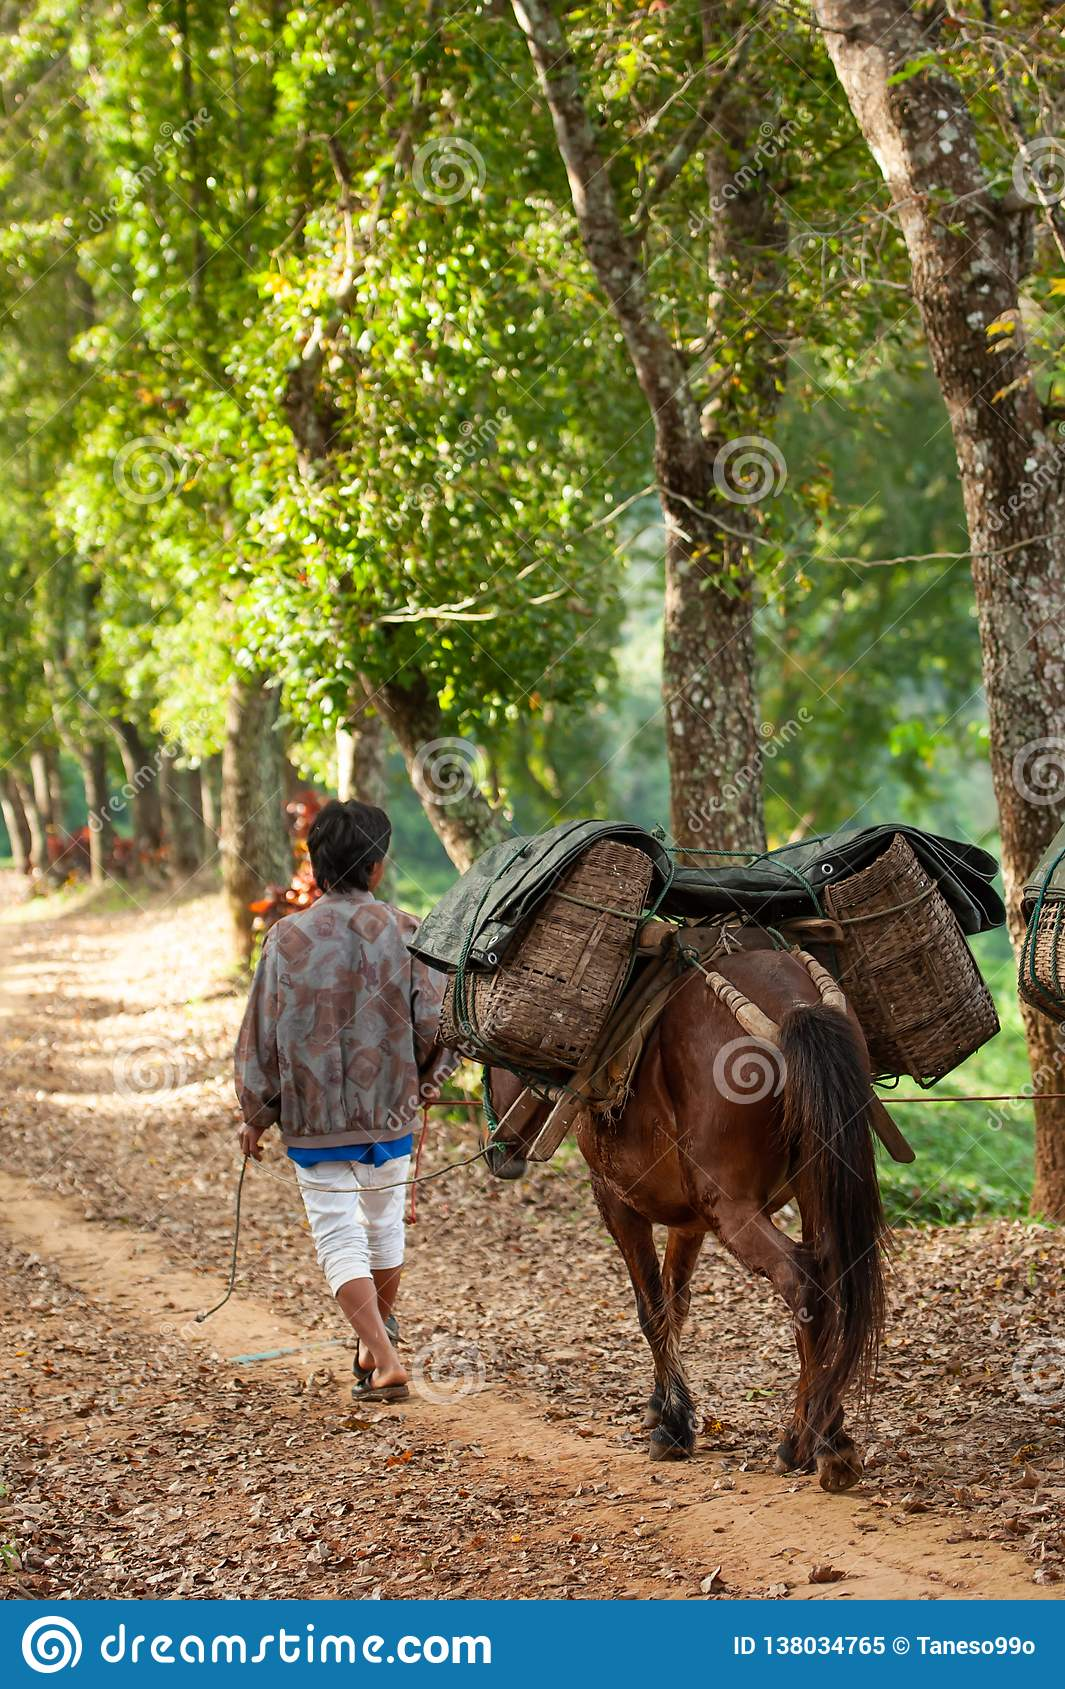 Rear view of farmer with horse carrying wicker baskets on the way to the tea field. Horse transporting. Doi Mae Salong, Mae Fa